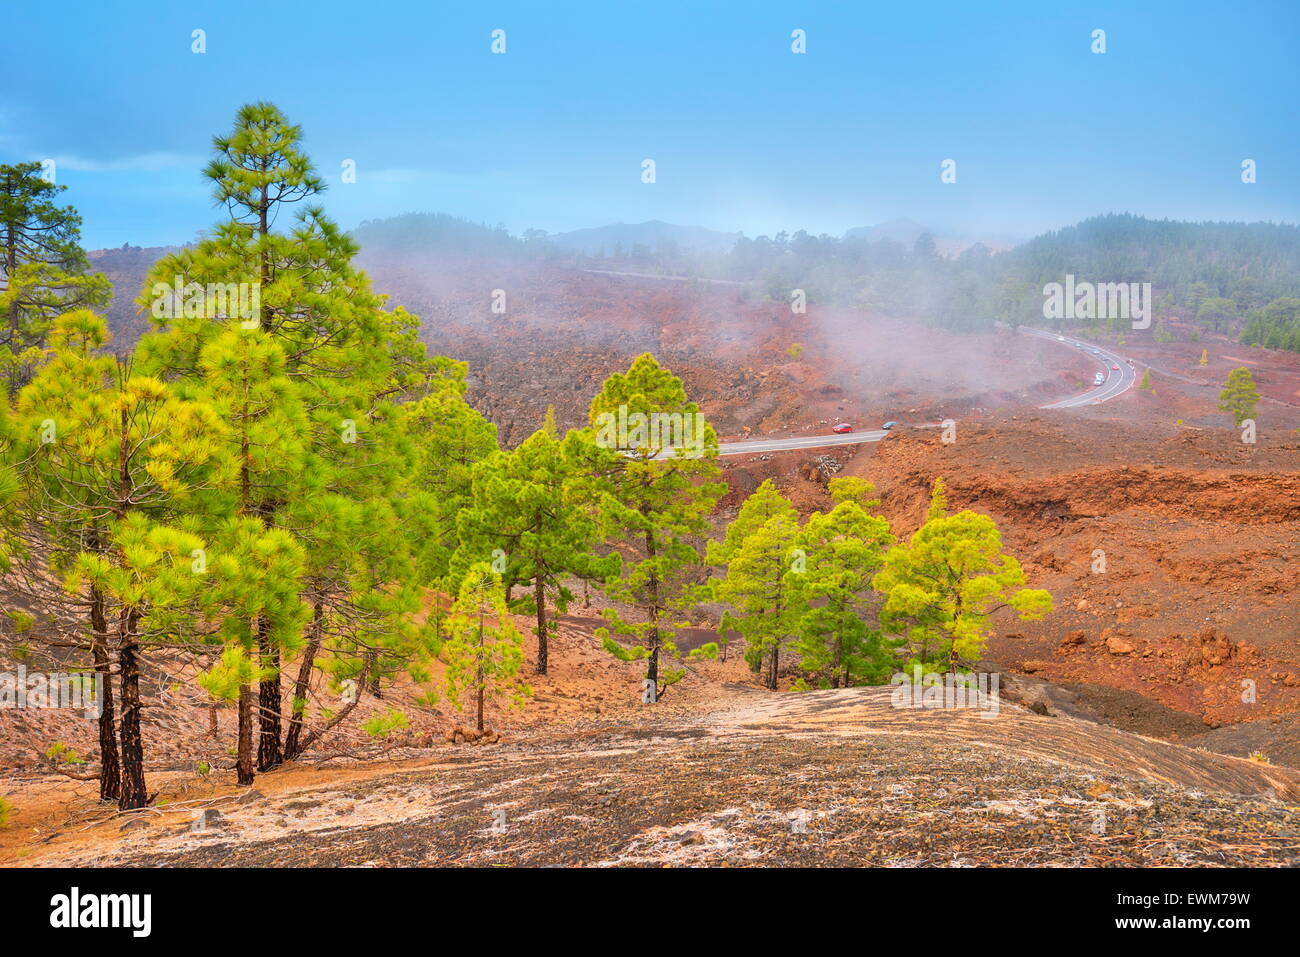 Volcanic landscape, Teide National Park, Tenerife, Canary Islands, Spain - Stock Image